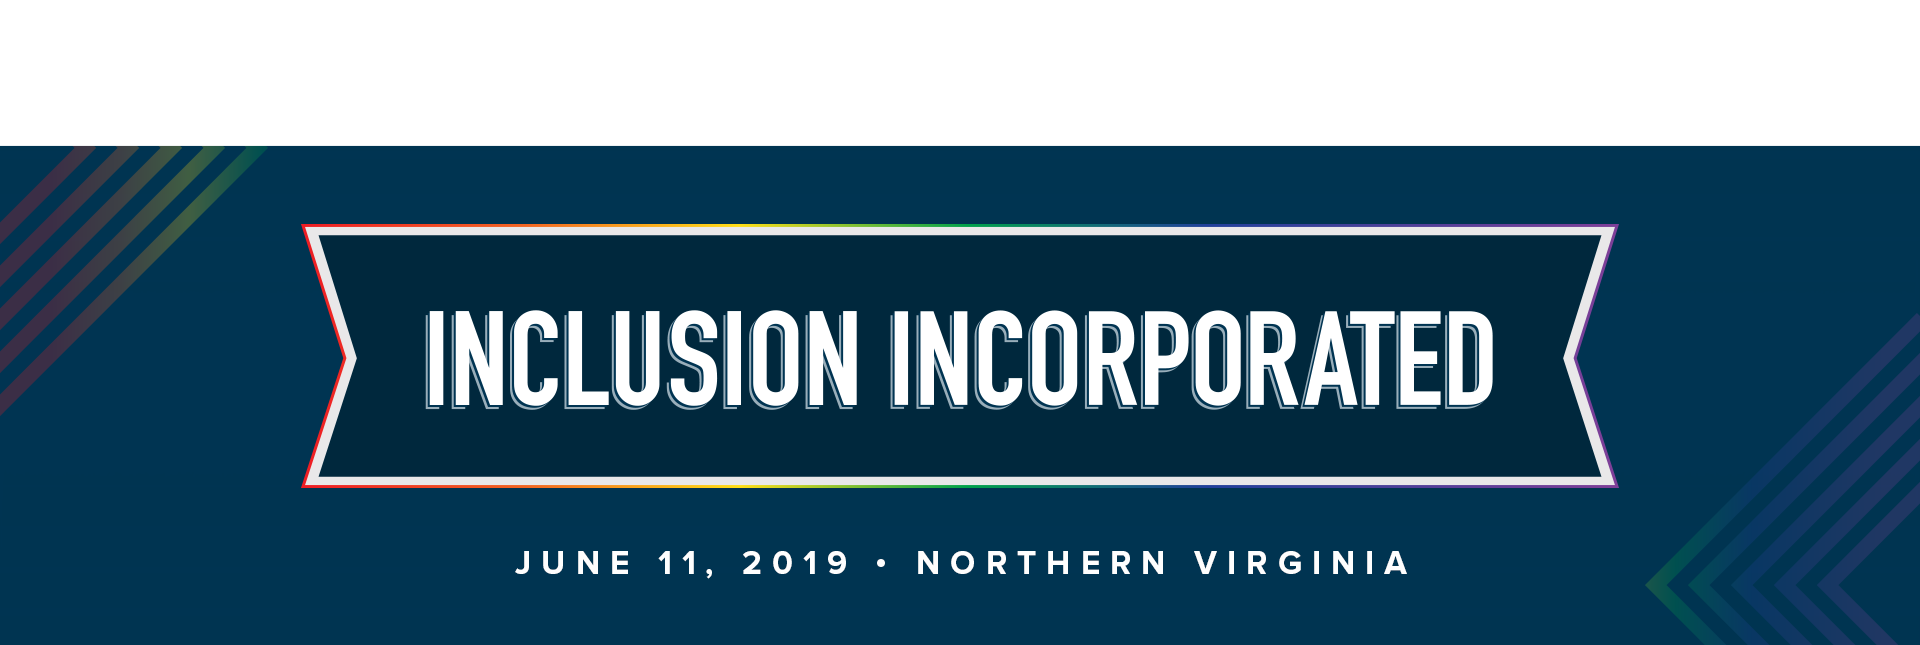 Inclusion Incorporated: Northern Virginia Regional Forum